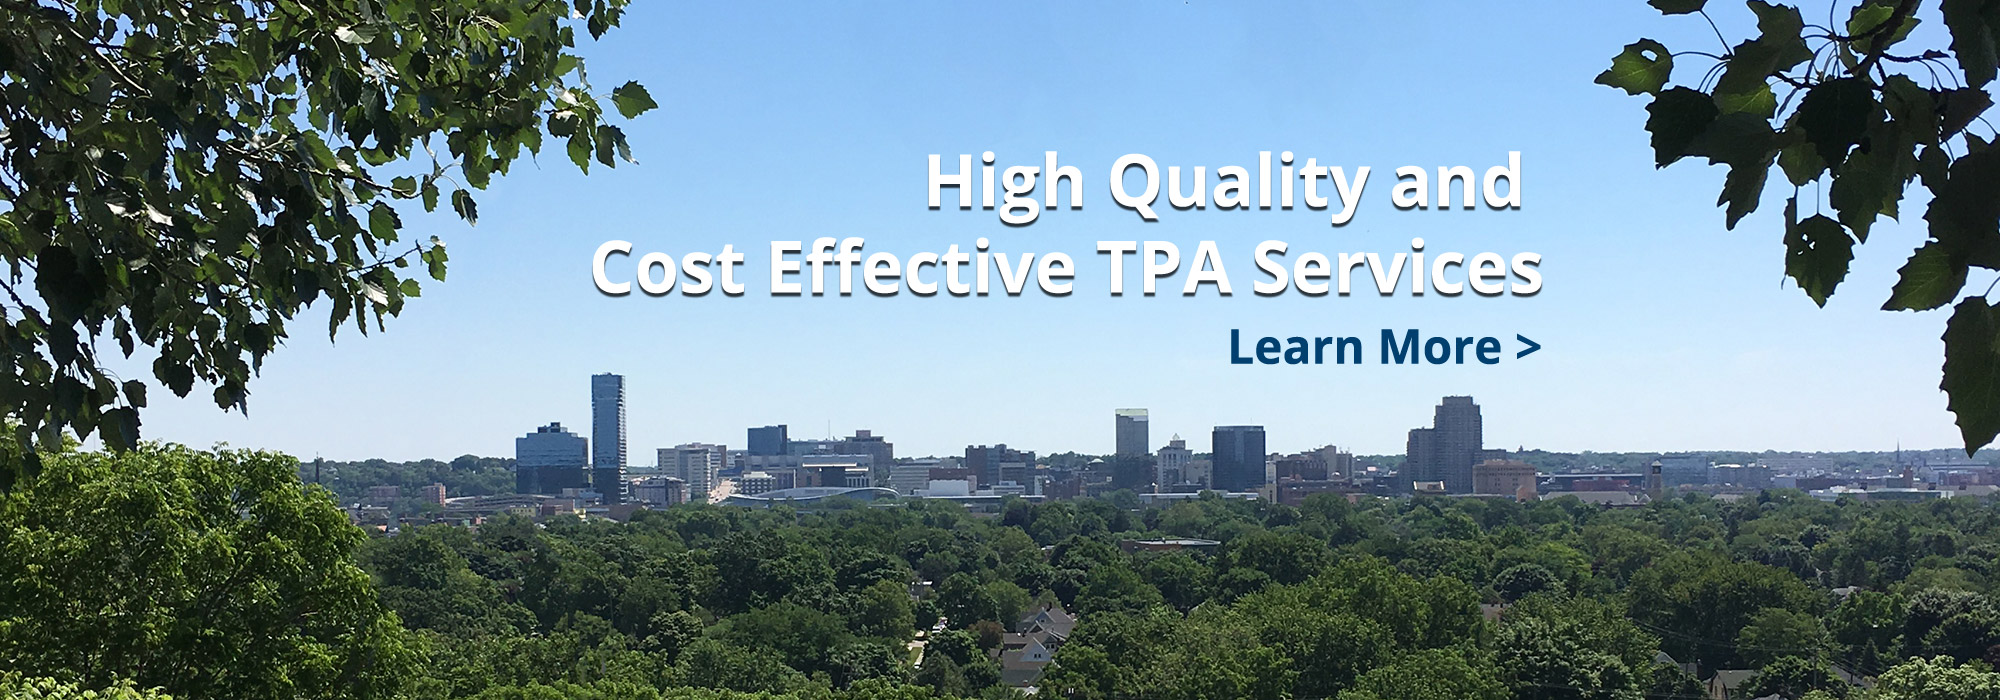 High Quality and Cost Effective TPA Services